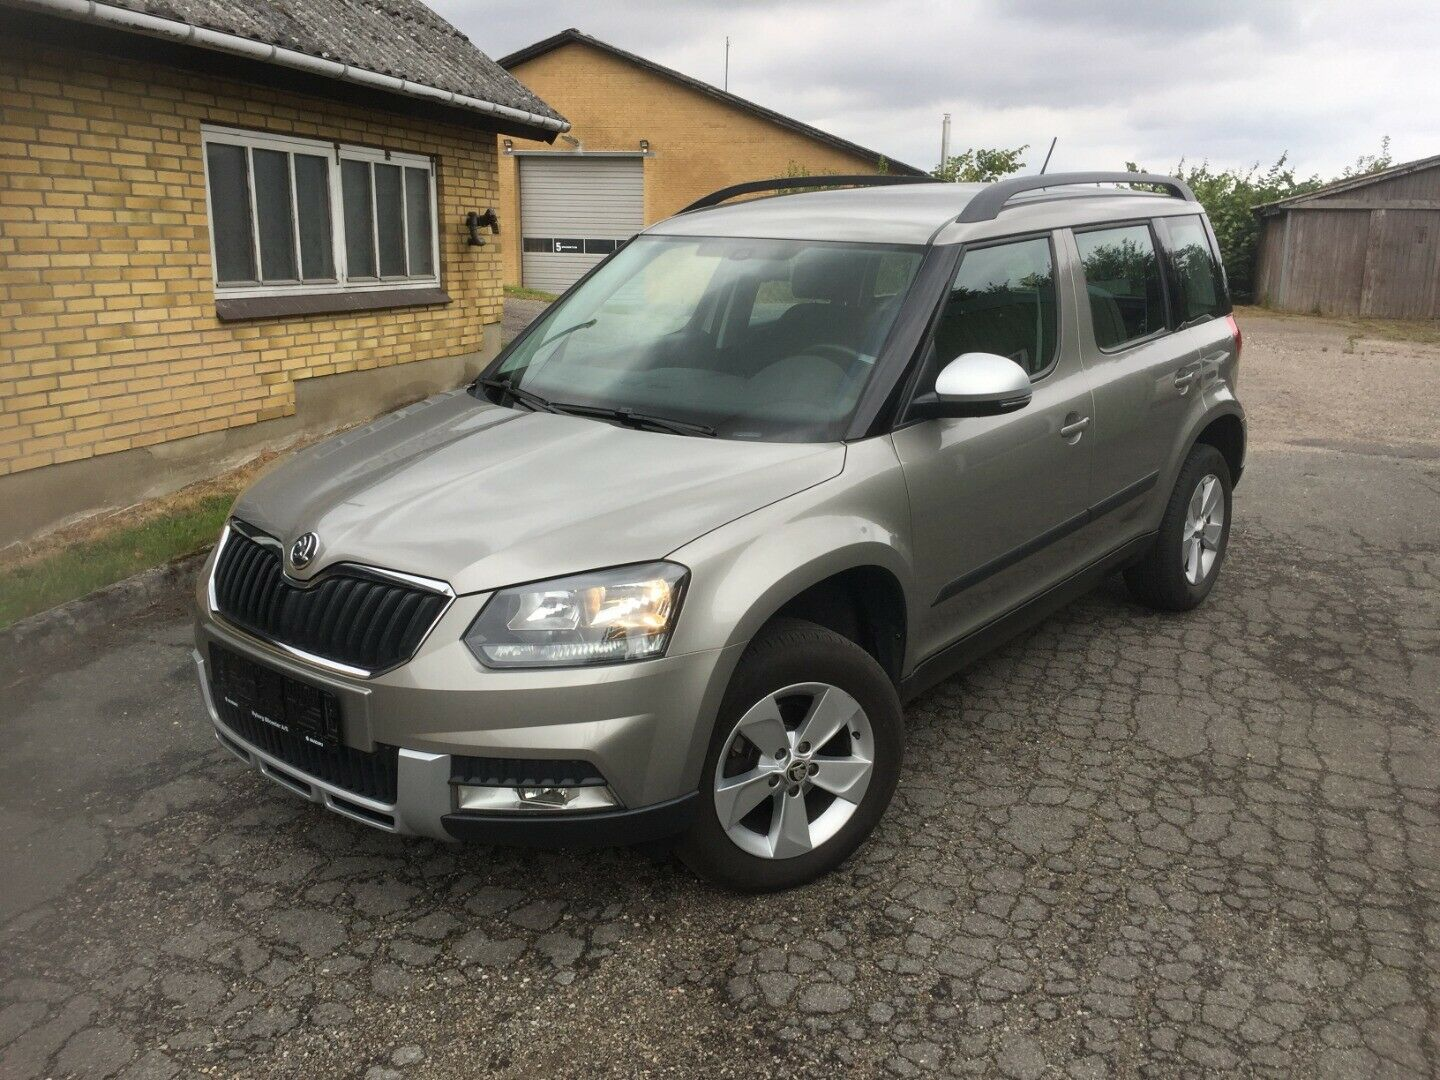 Skoda Yeti Outdoor 1,4 TSi 122 Ambition GreenTec 5d